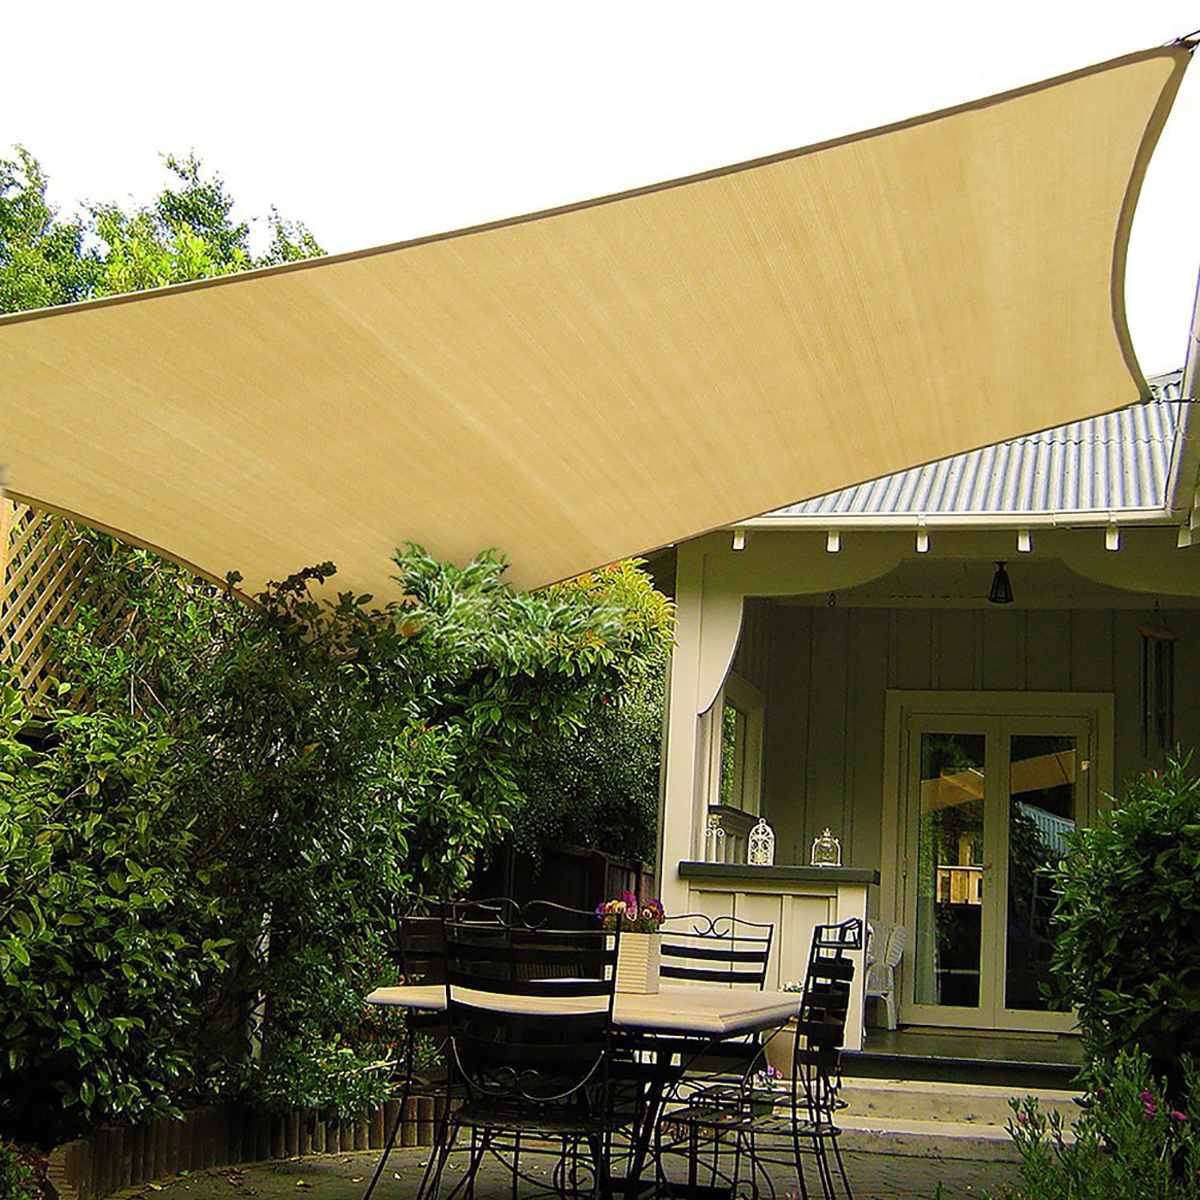 3x4meter 3x3meter HDPE Sun Shade Sail Cloth Sun Shelter Sunshade Protection Outdoor Canopy Garden Patio Shade